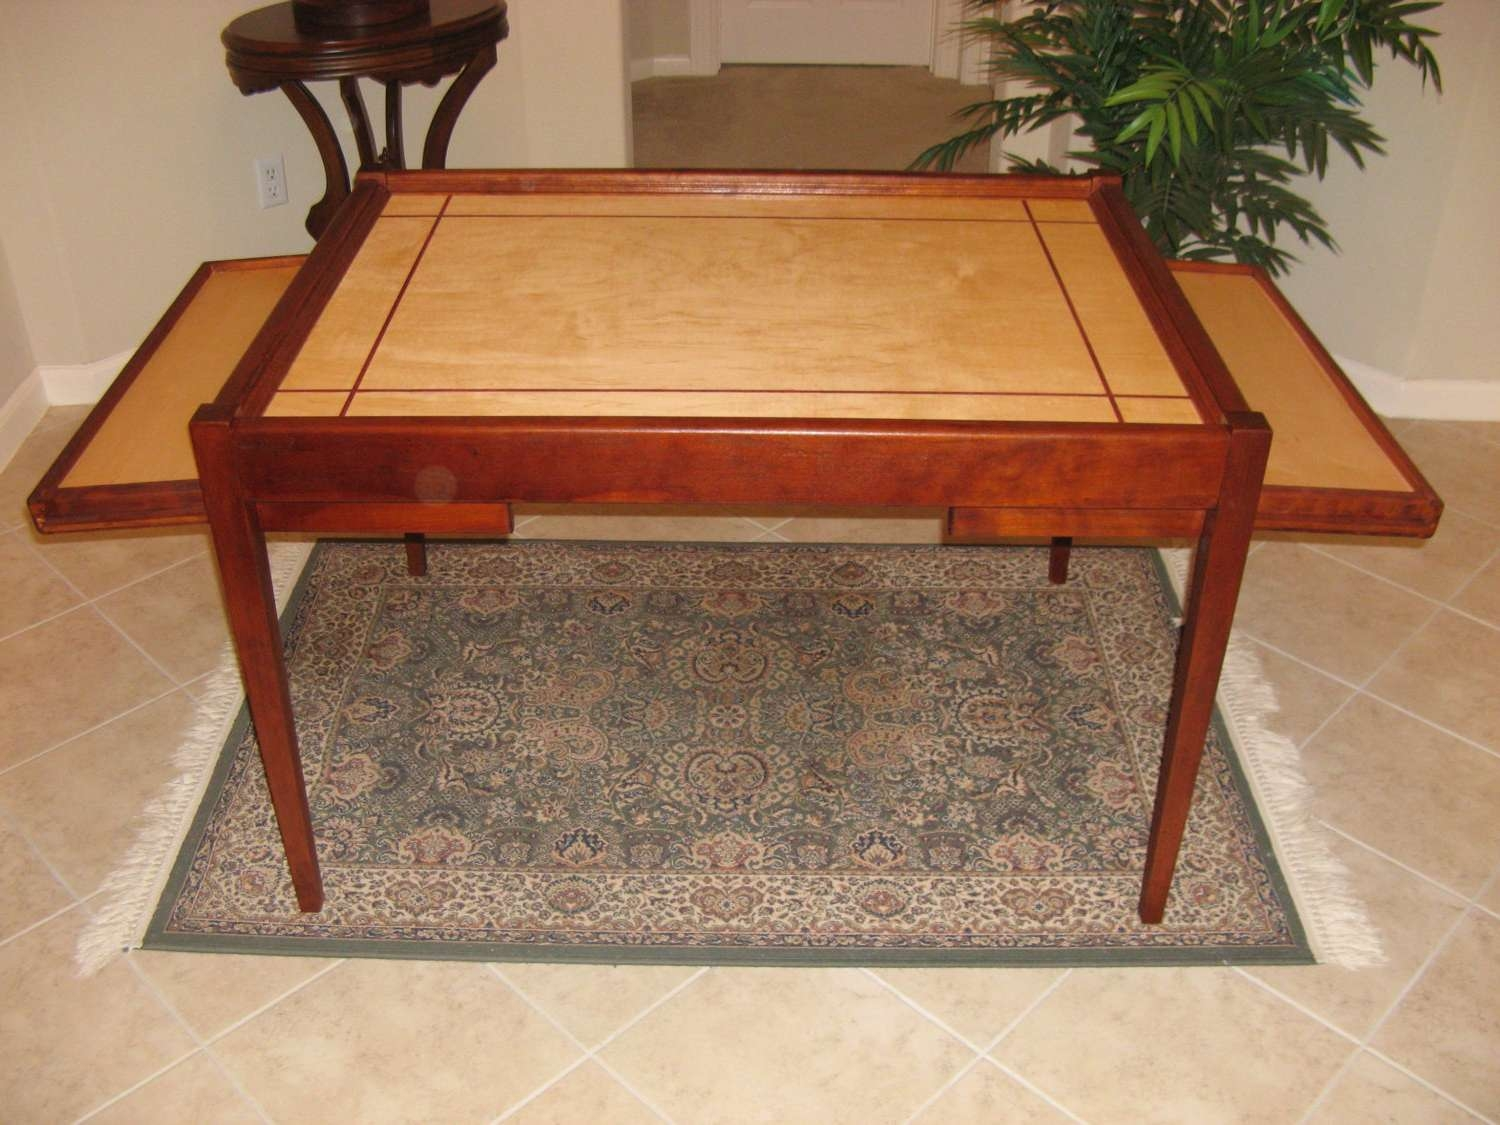 Jigsaw Puzzle Table With Additional Legroom In Most Current Puzzle Coffee Tables (View 11 of 20)